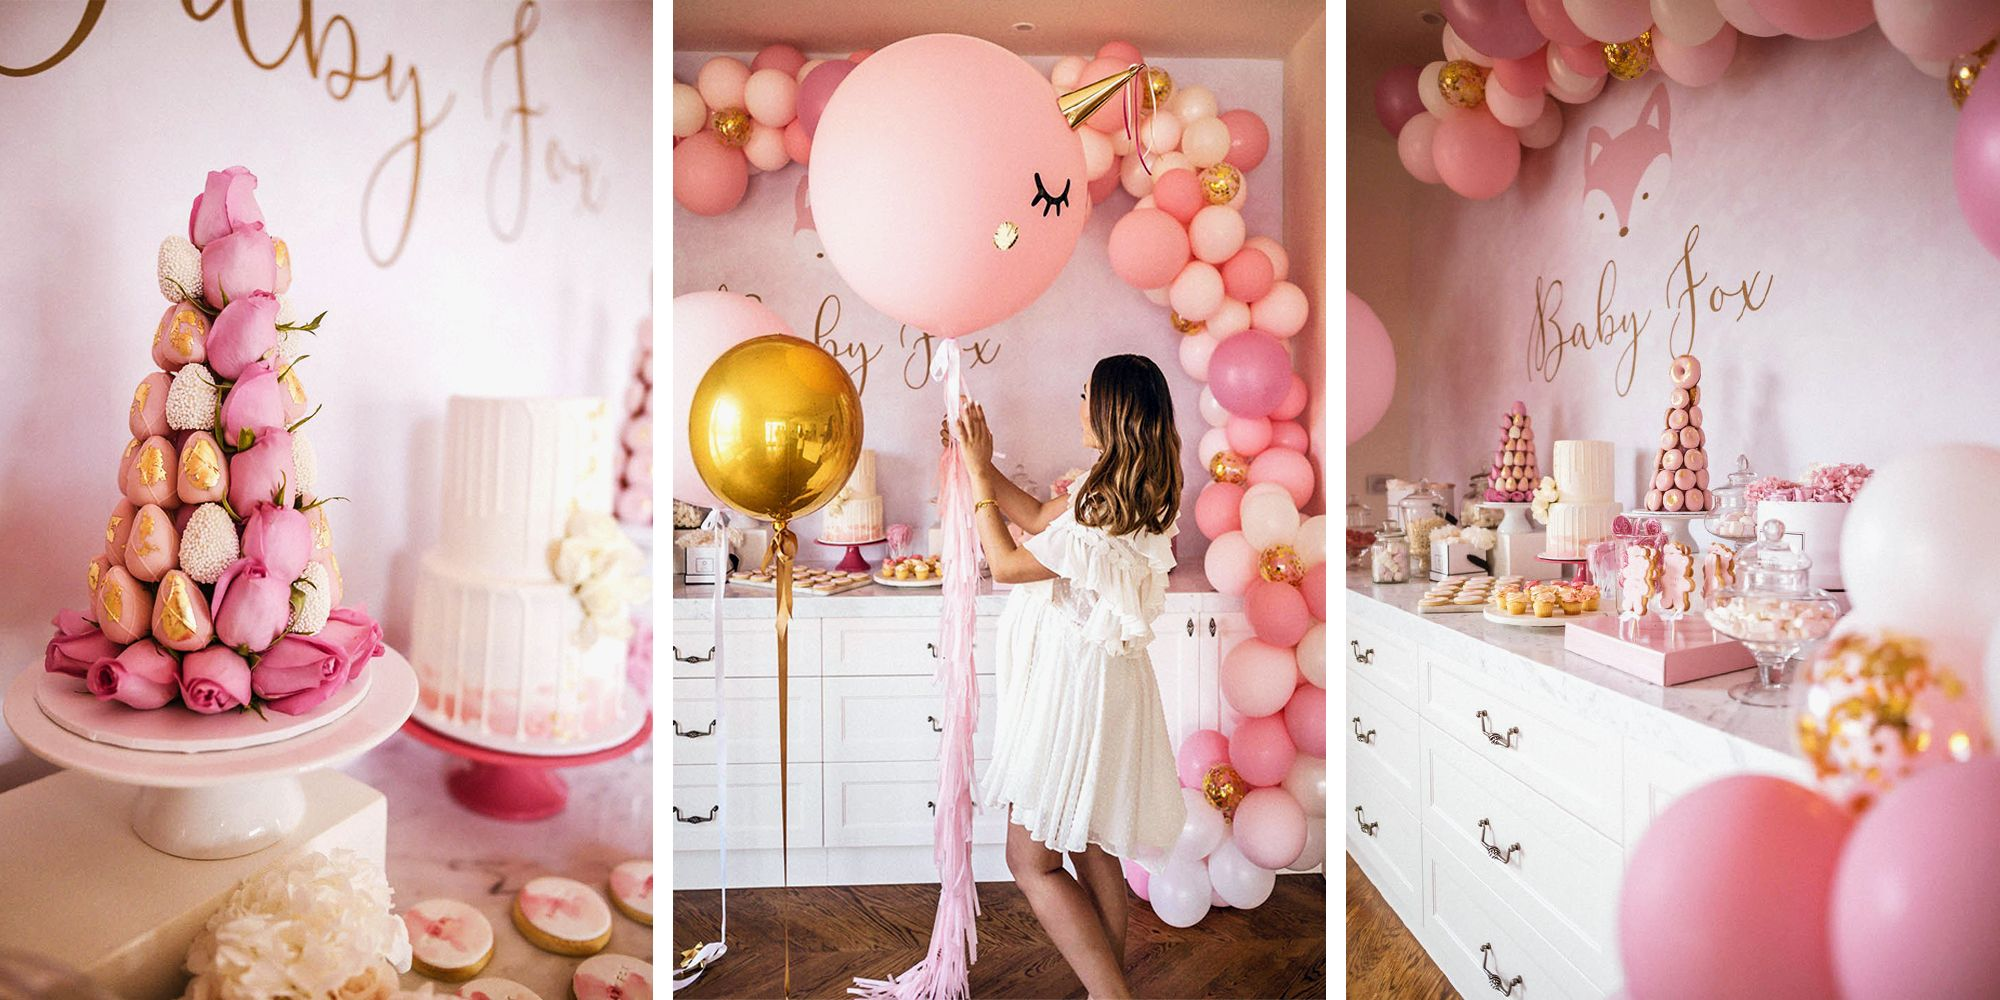 Decoration Ideas Baby Shower Girl 7 Best Baby Shower Ideas For 2018 Trendy Baby Shower Decorations